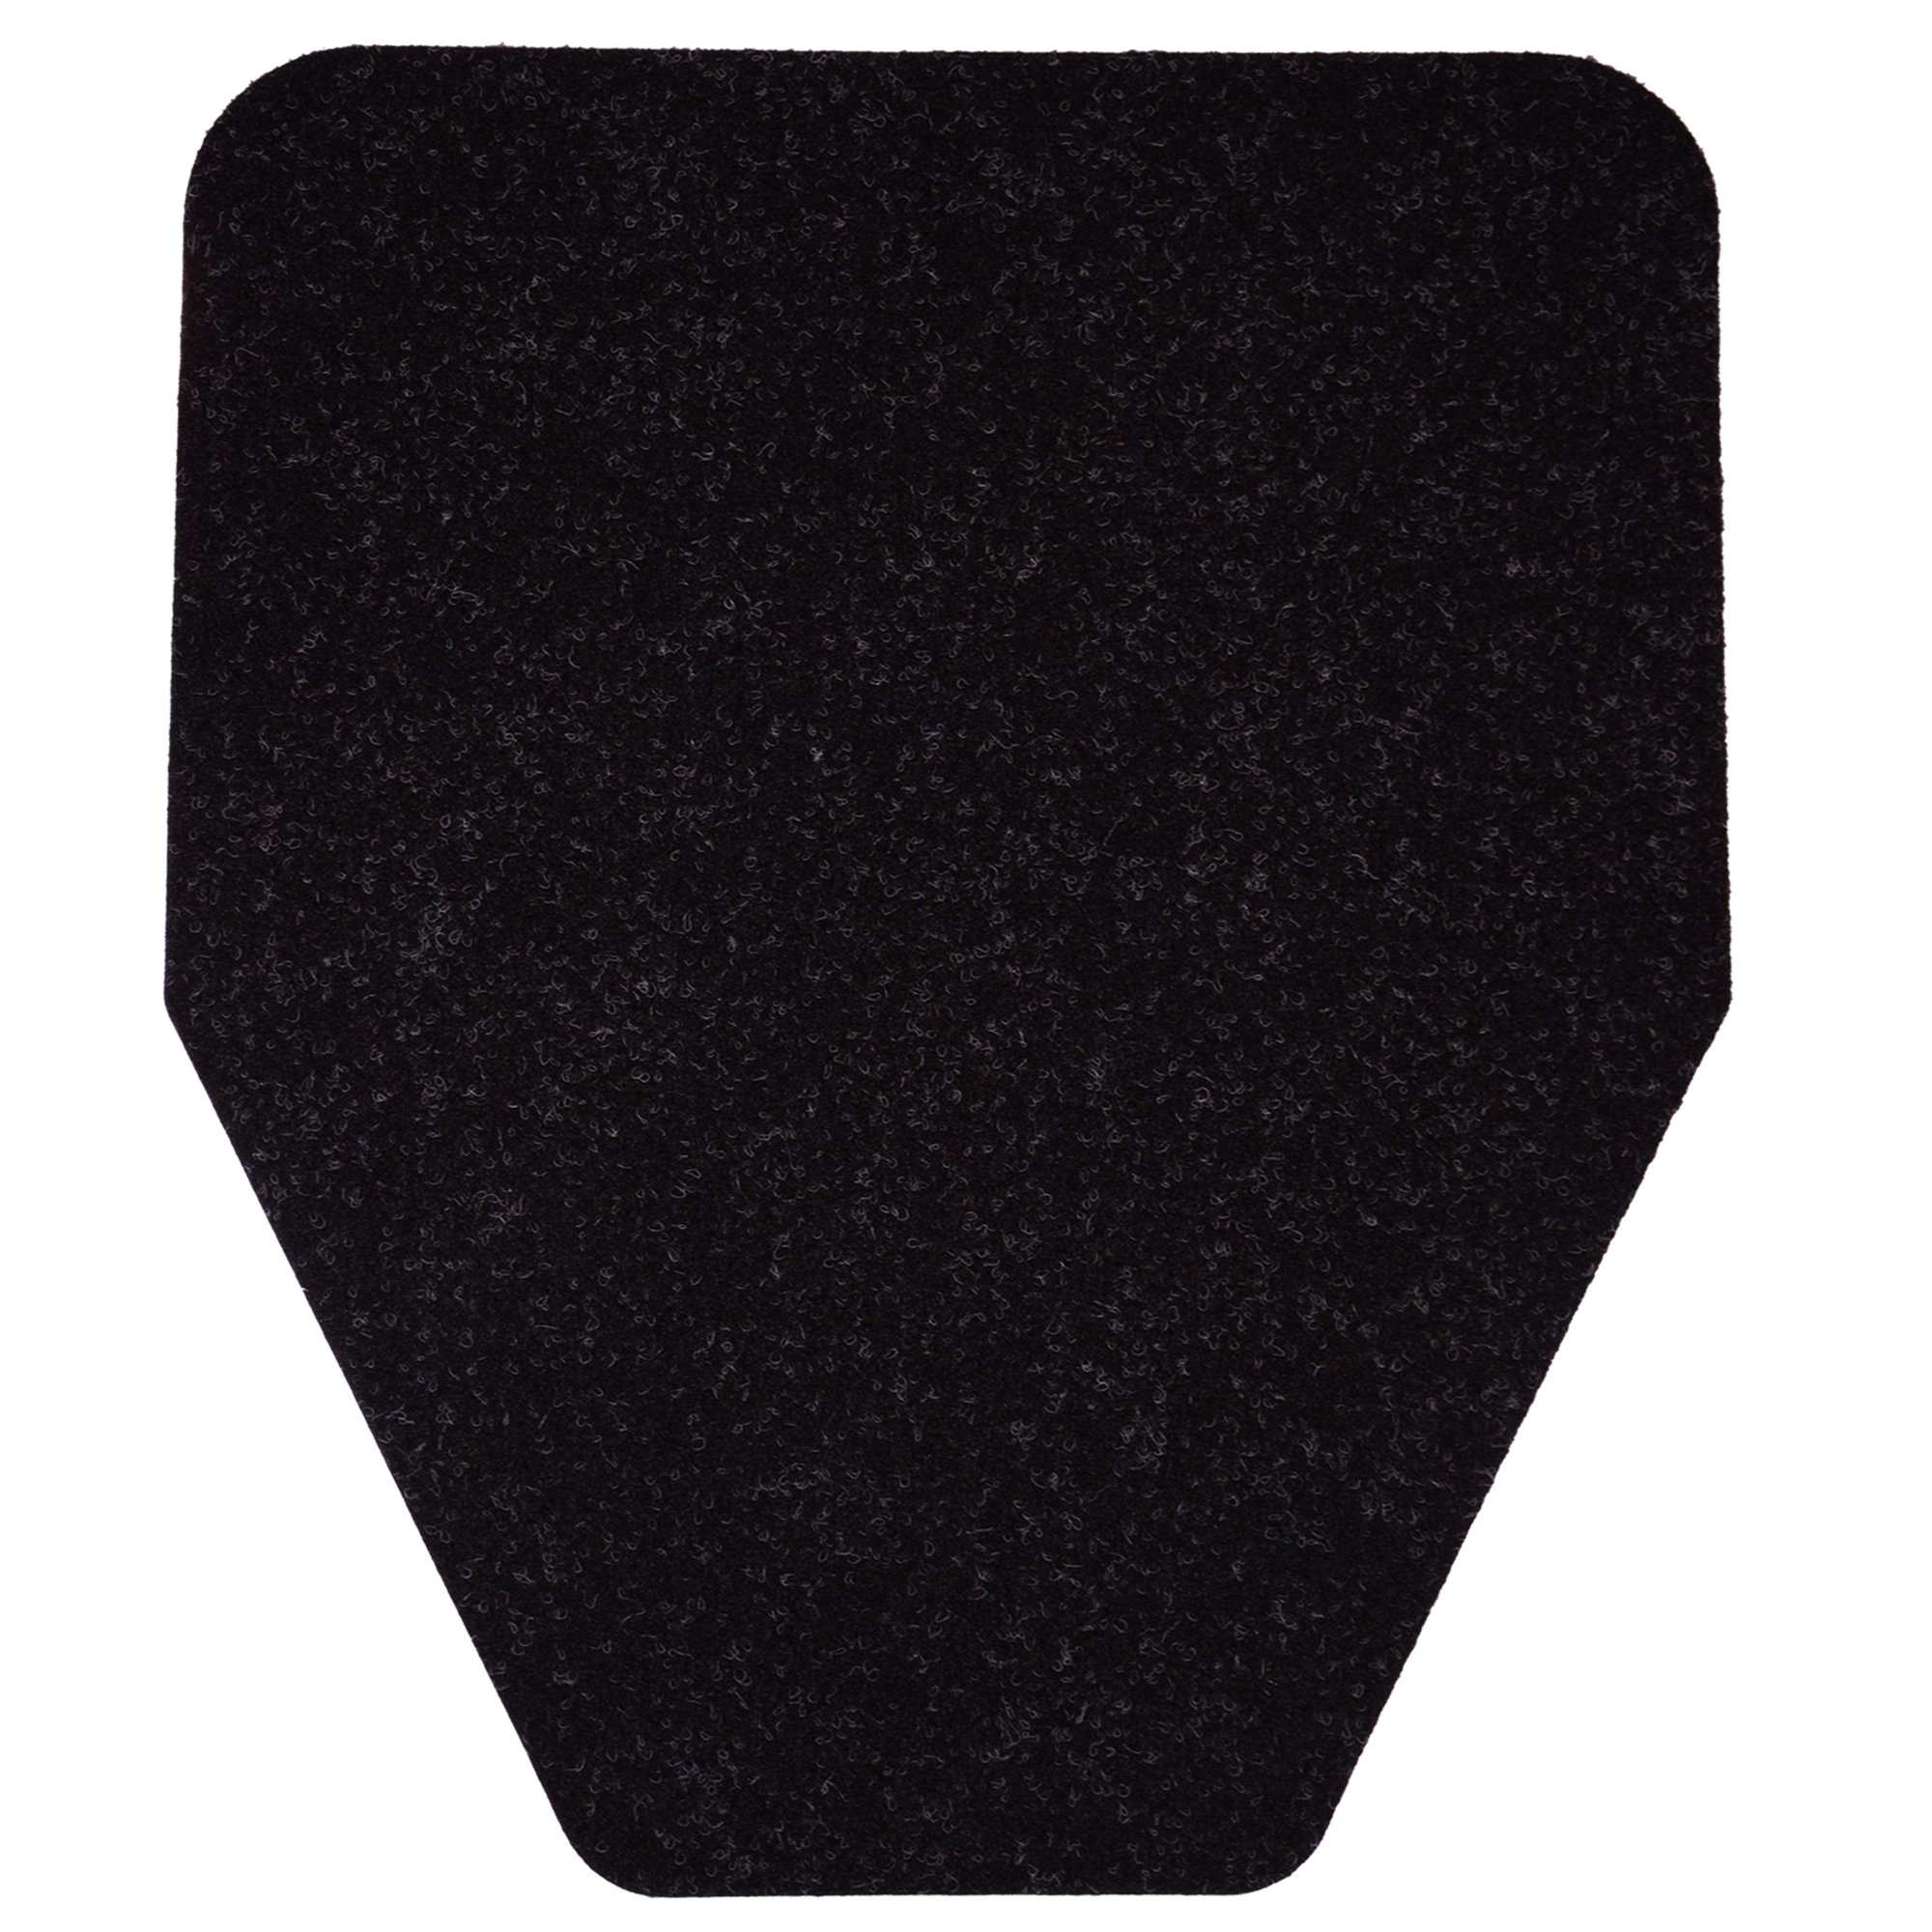 Urinal Mat (6-Pack) Antimicrobial, Non-Slip, Odor-Eliminating Disposable Mats (Black)